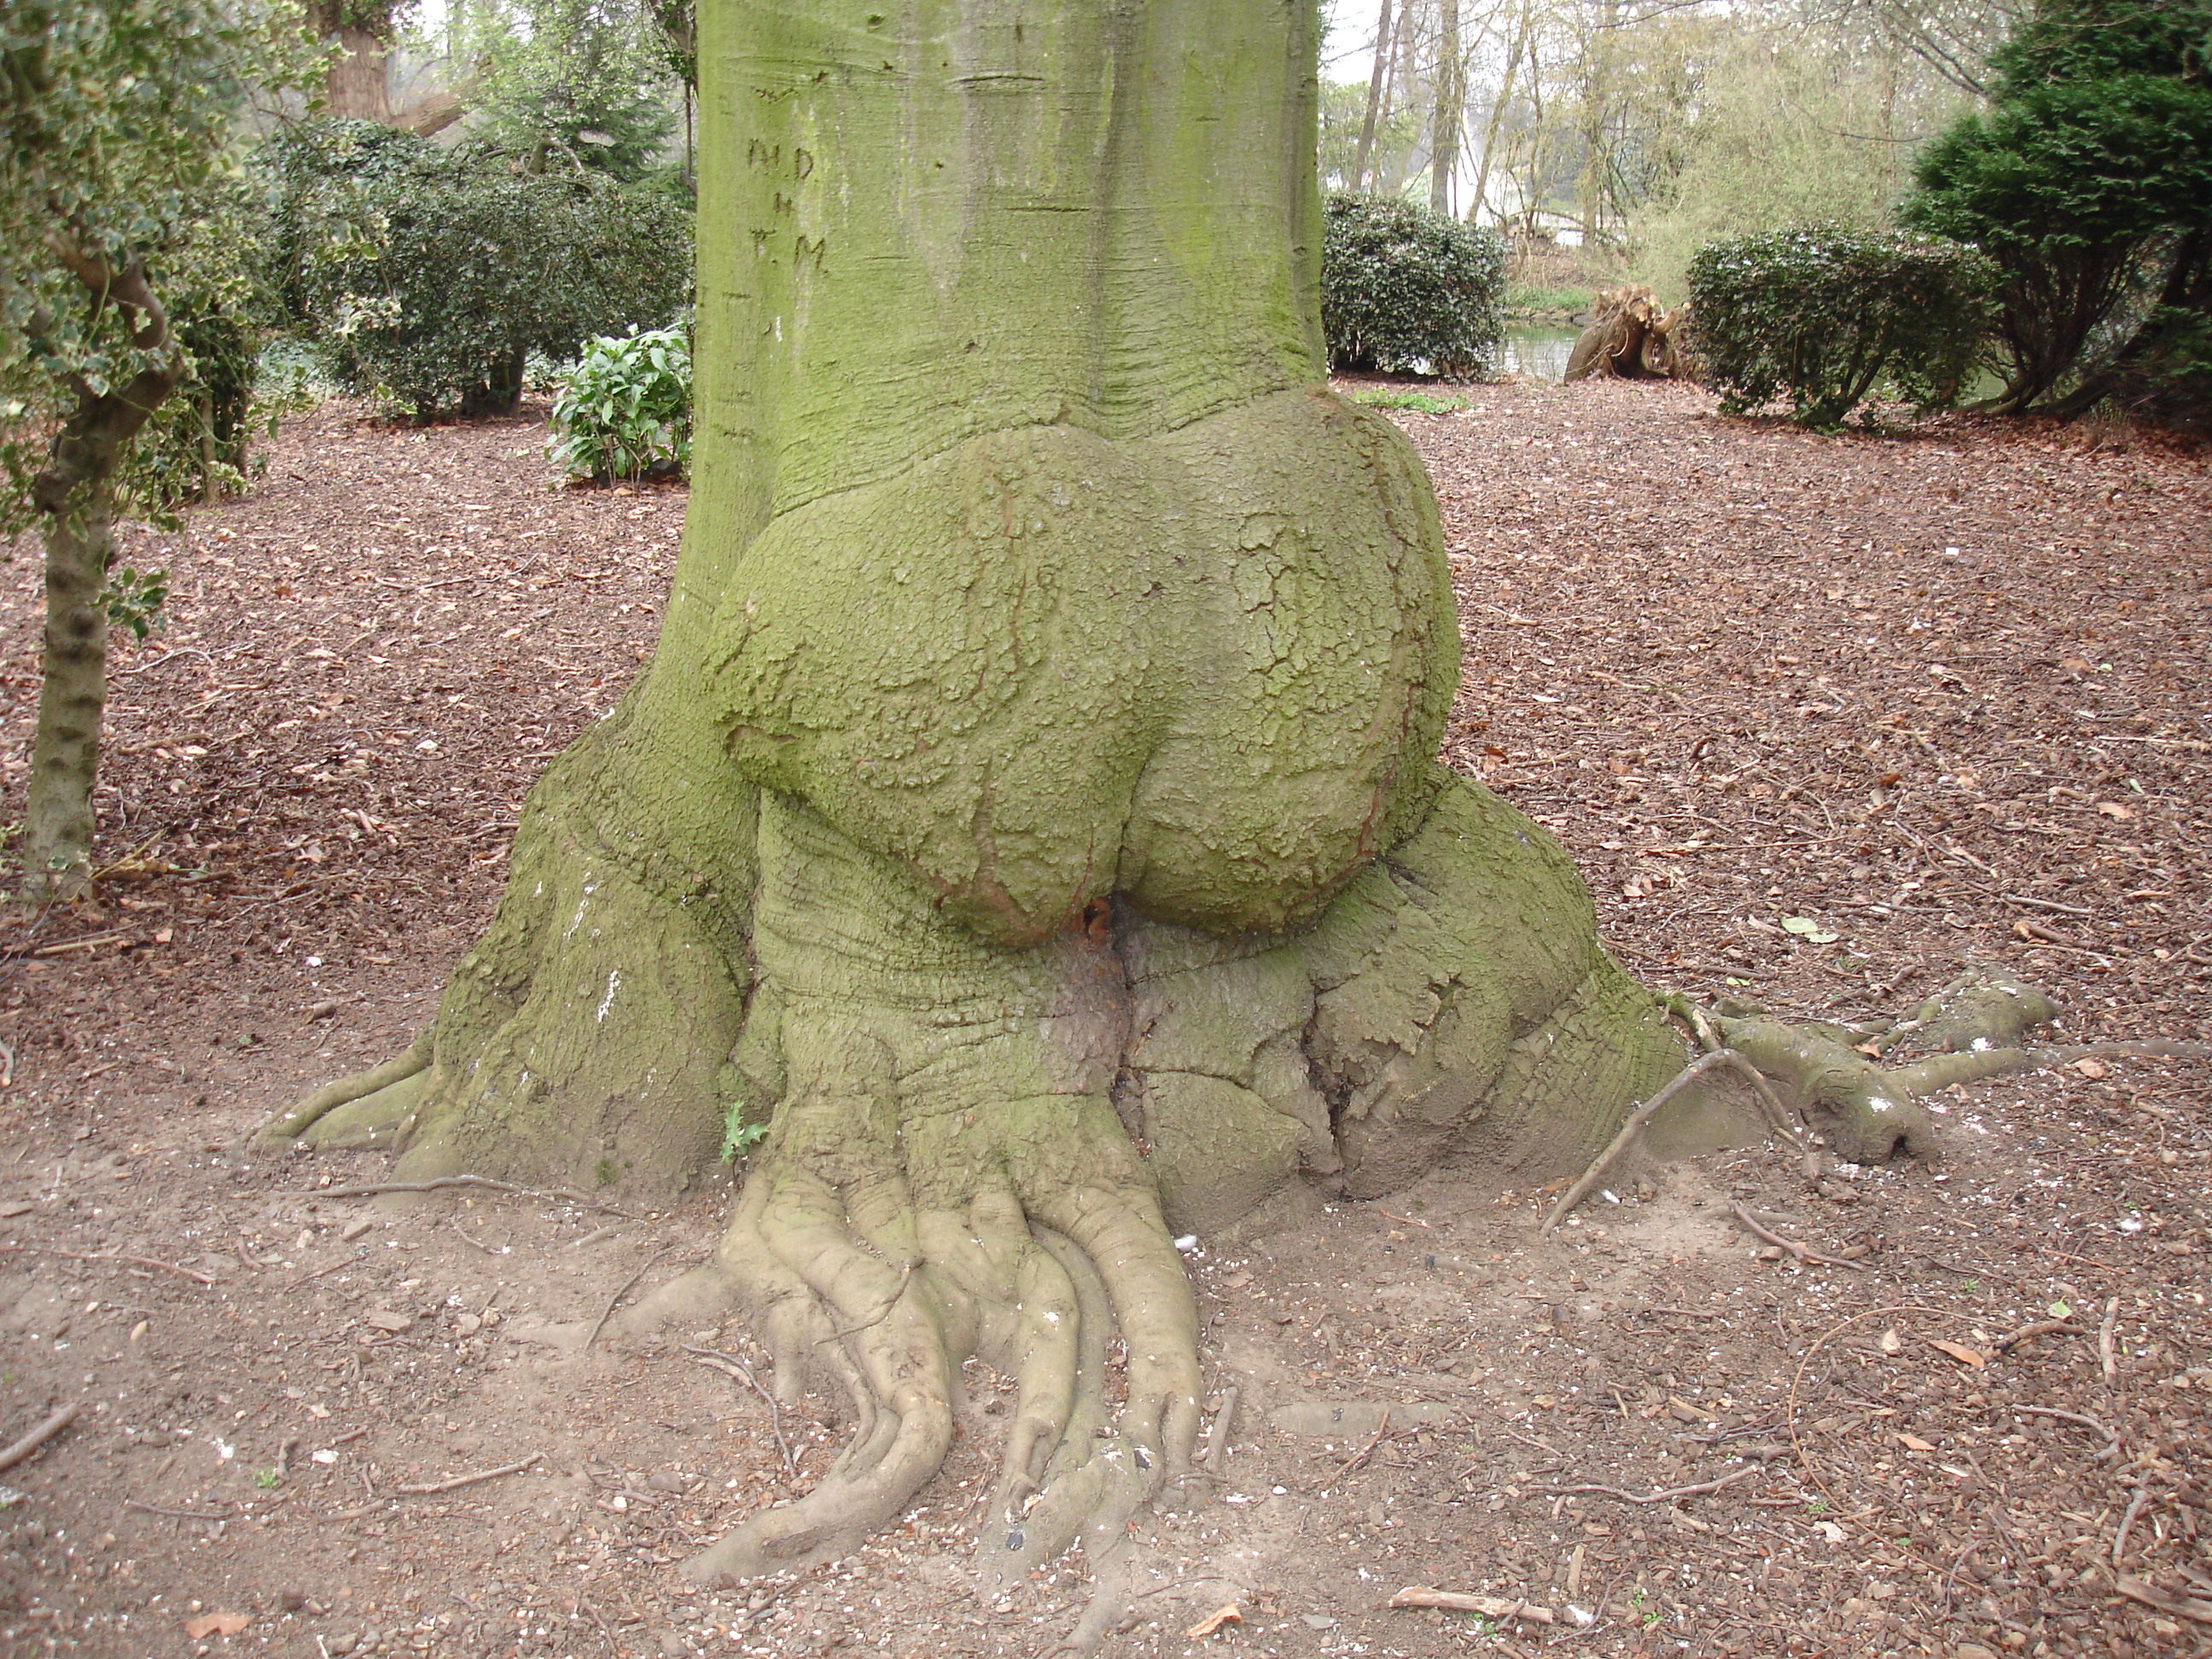 butt of tree